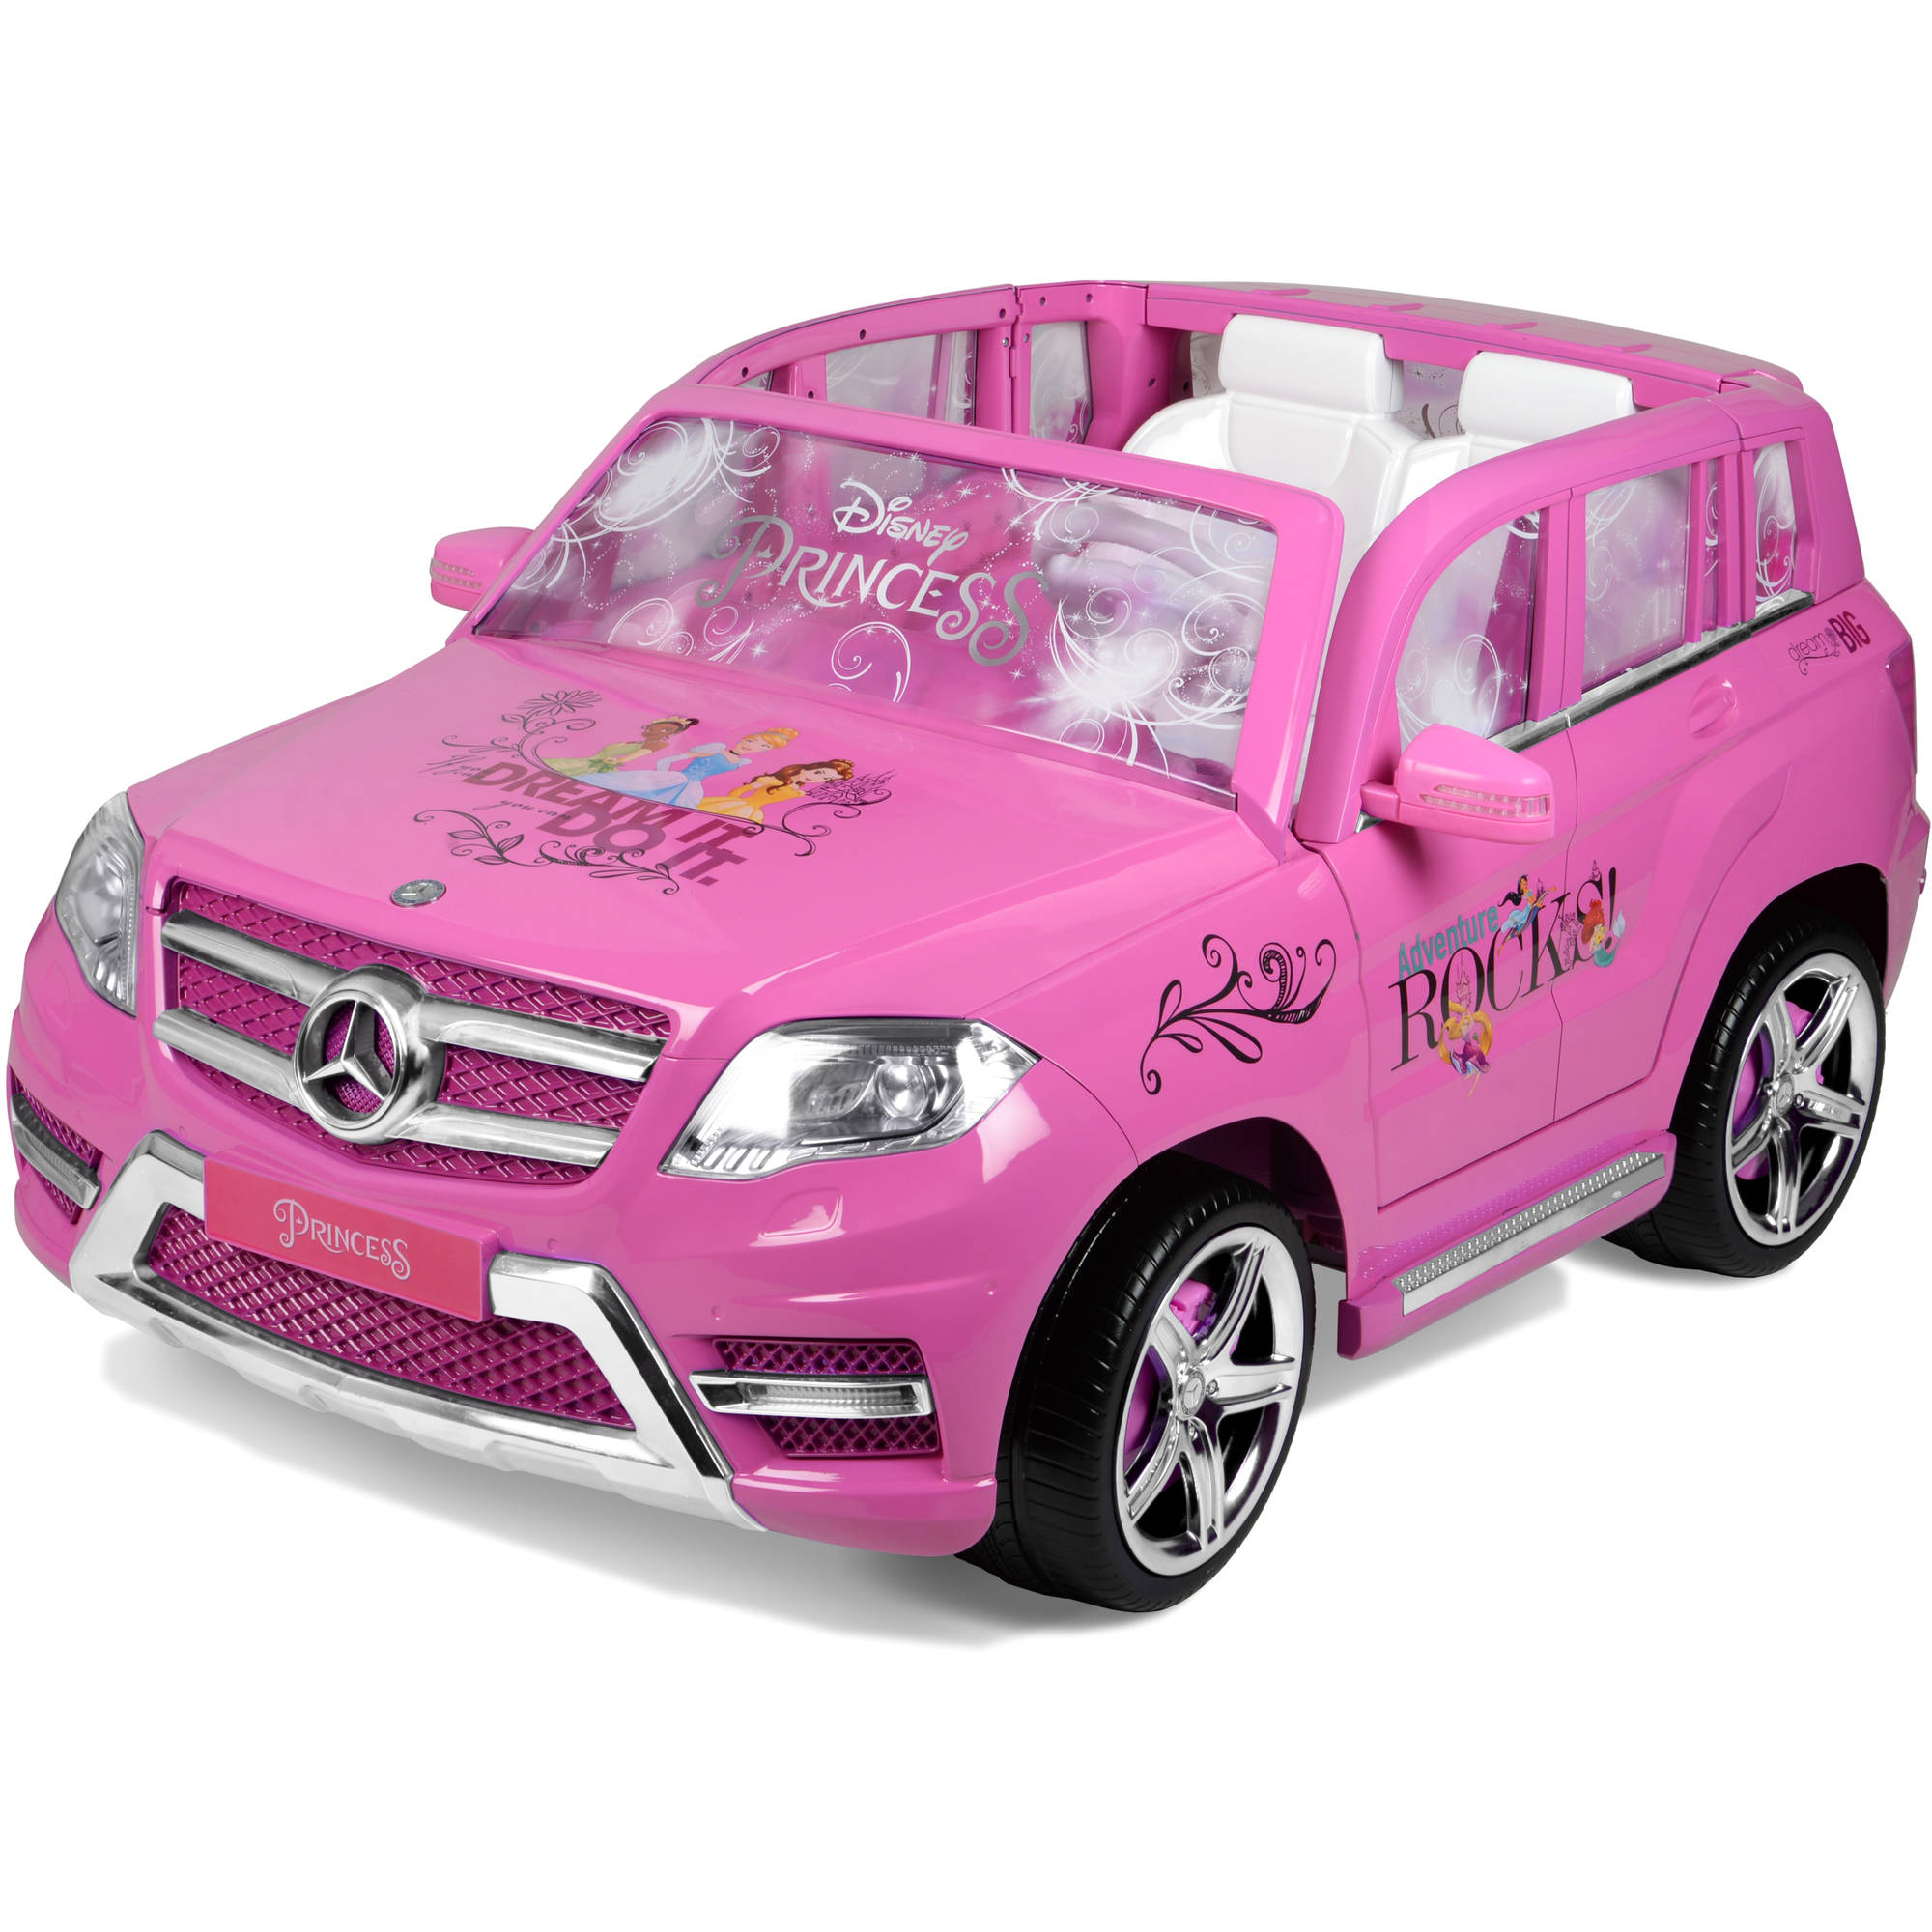 Disney Princess Mercedes 12-Volt Battery Powered Ride-On